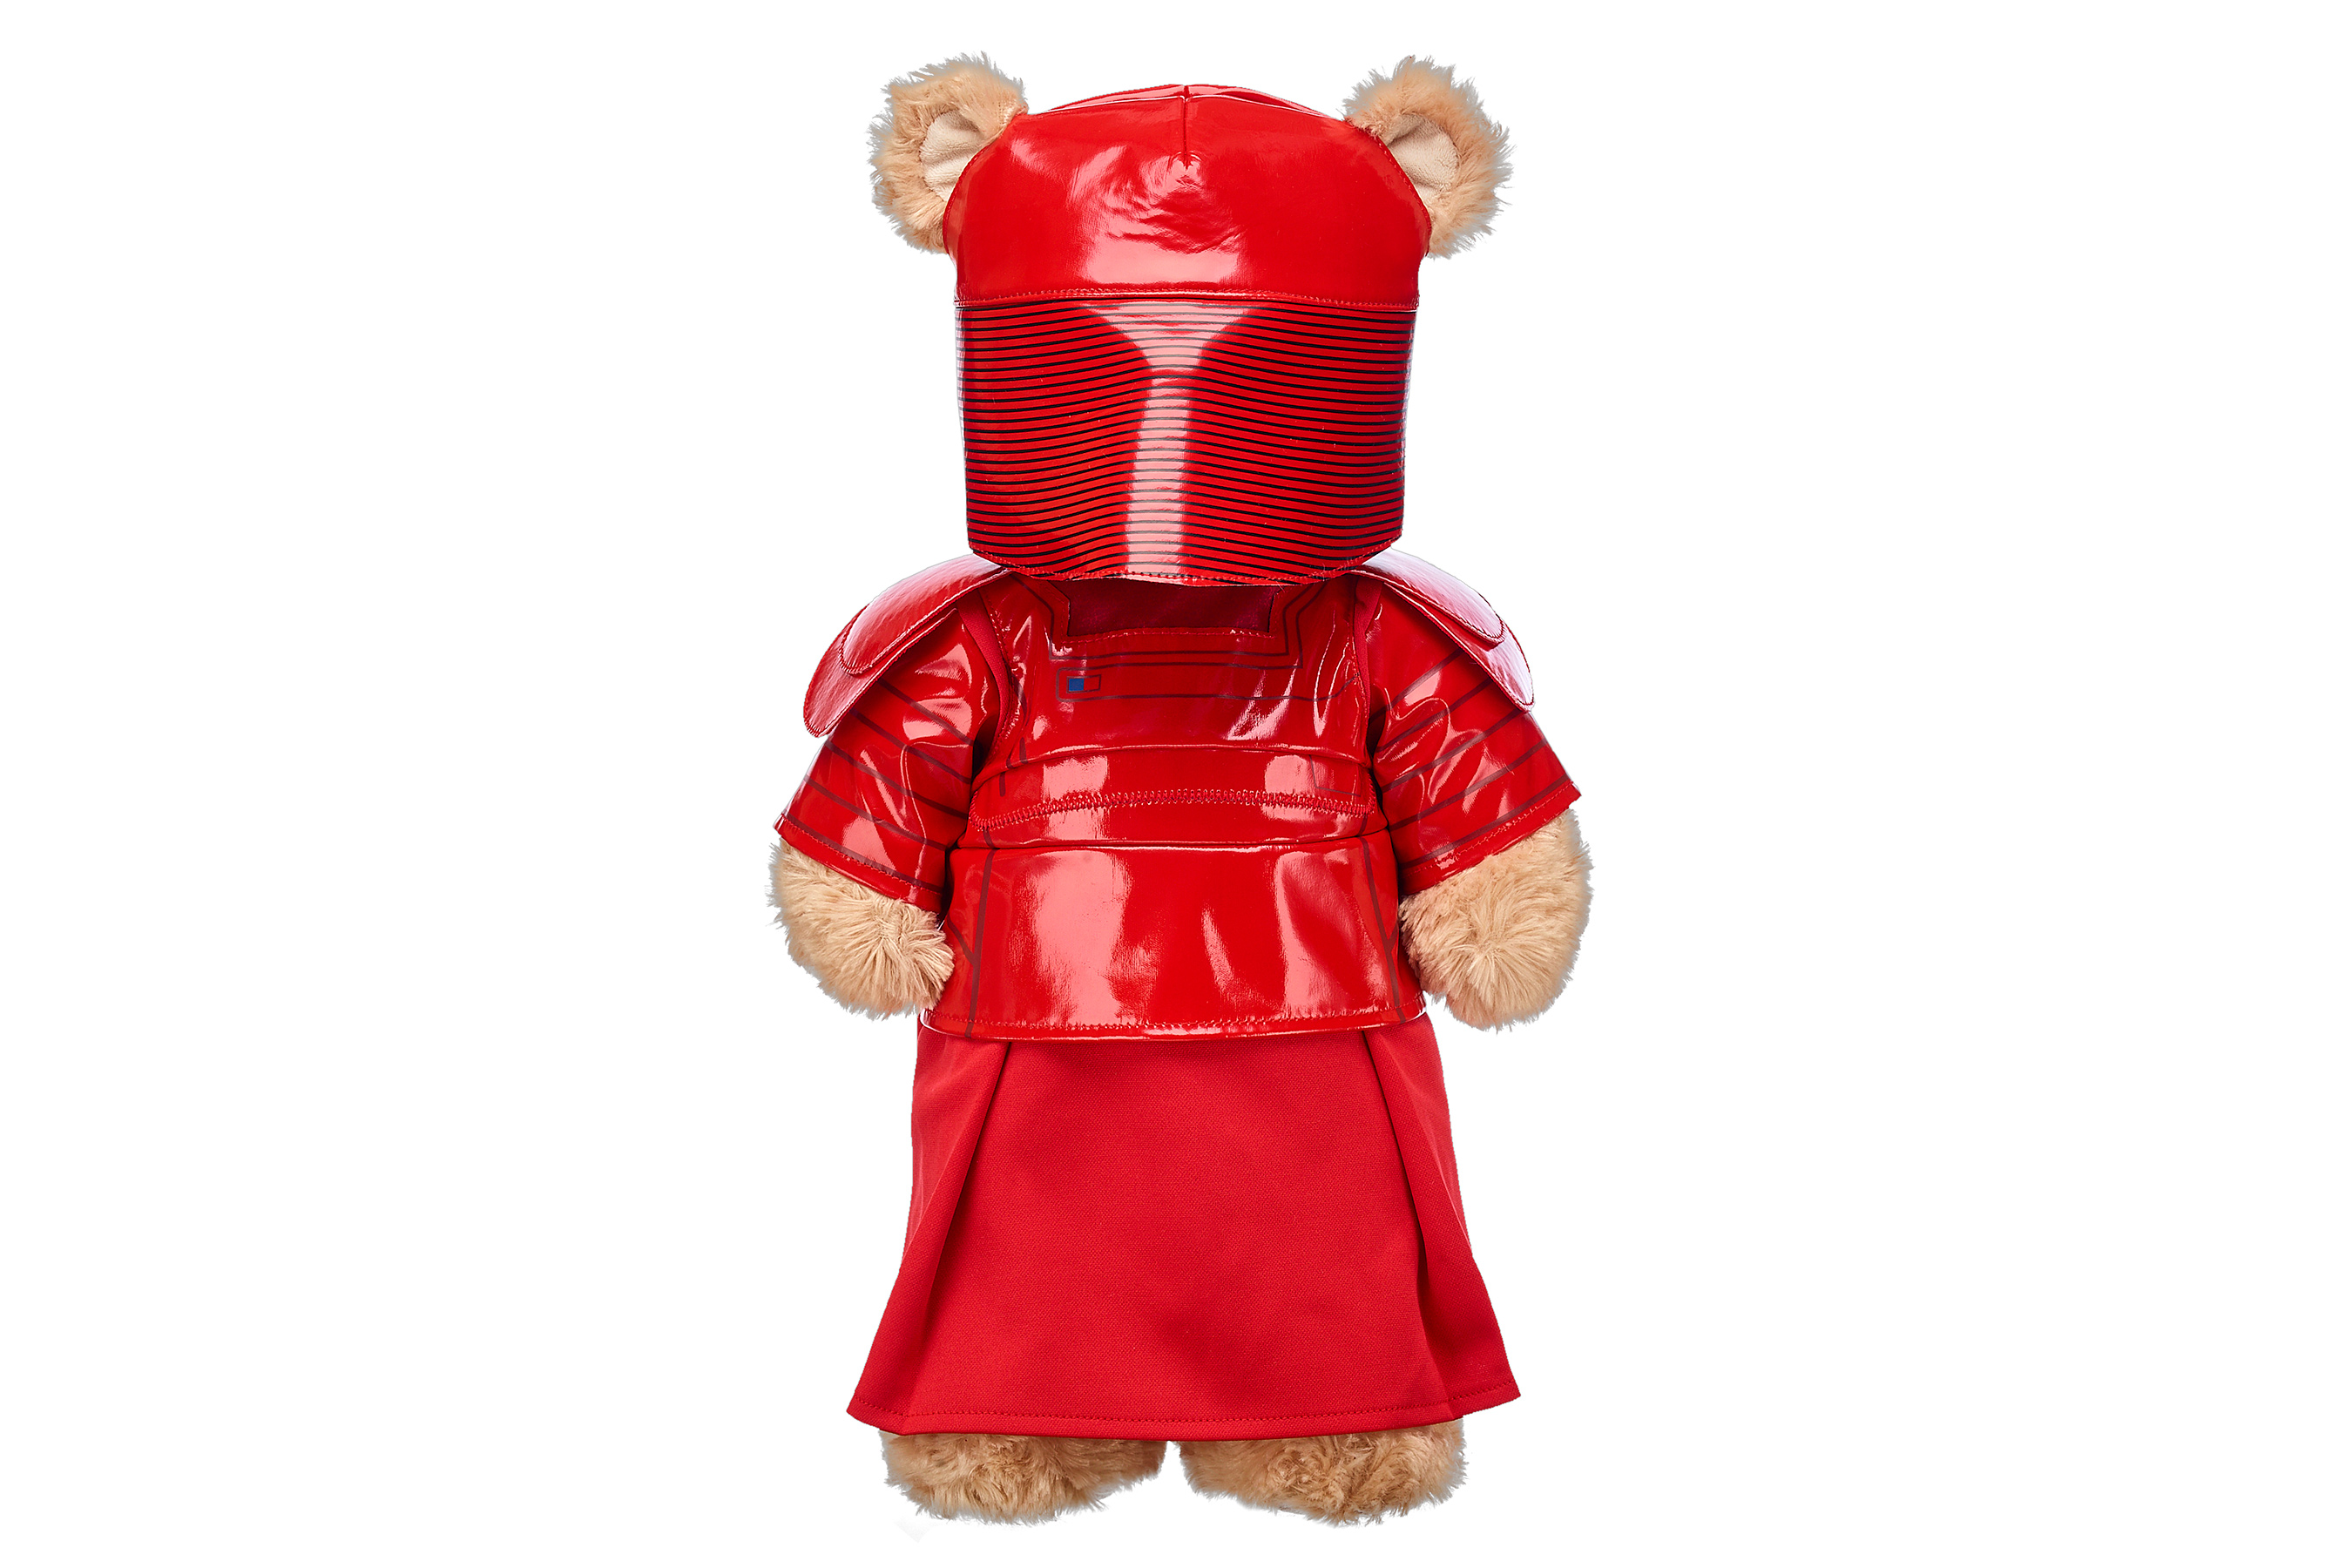 Star Wars Last Jedi Praetorian Guard Build-a-Bear Is Terrifying | Inverse  sc 1 st  Inverse & Star Wars: Last Jedi Praetorian Guard Build-a-Bear Is Terrifying ...